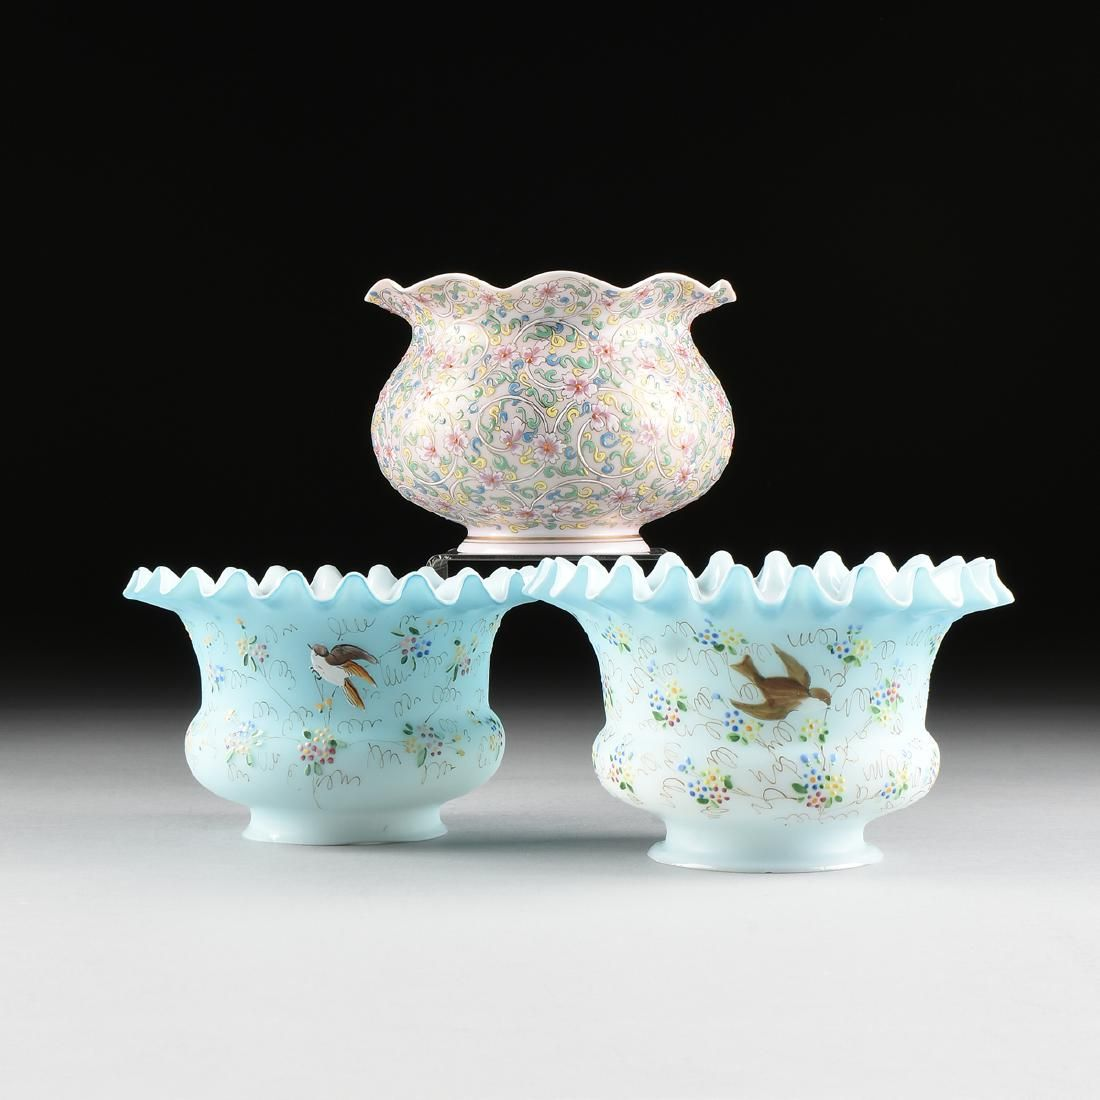 A GROUP OF THREE LATE VICTORIAN ENAMELED GLASS PARLOR